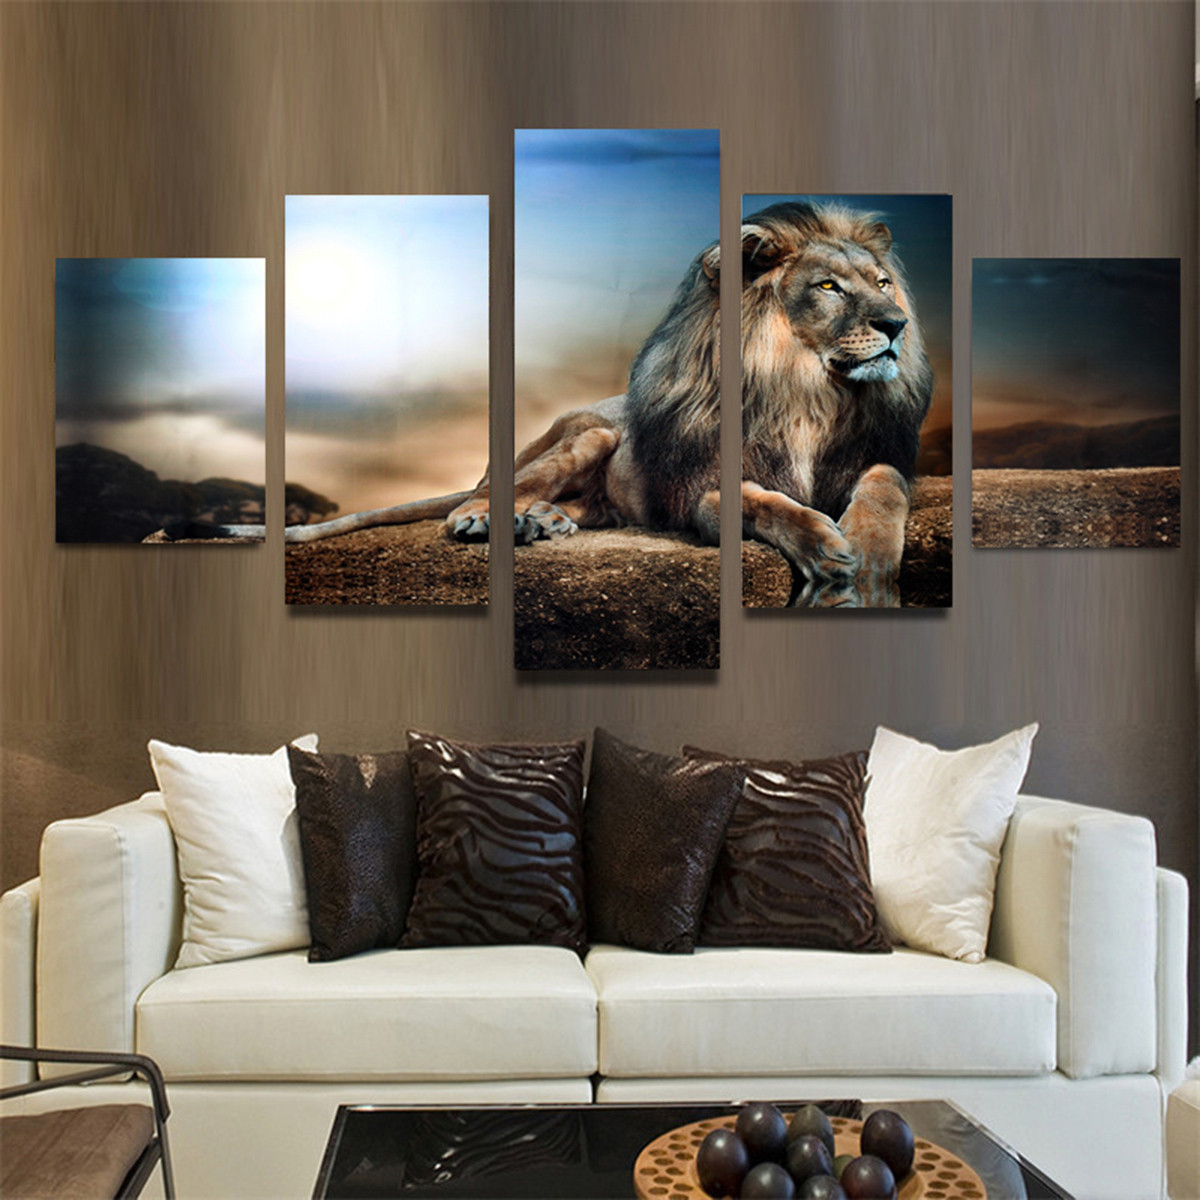 5PCS Frameless Canvas Print Sitting Lion Wall Art Painting Picture Home Decoration